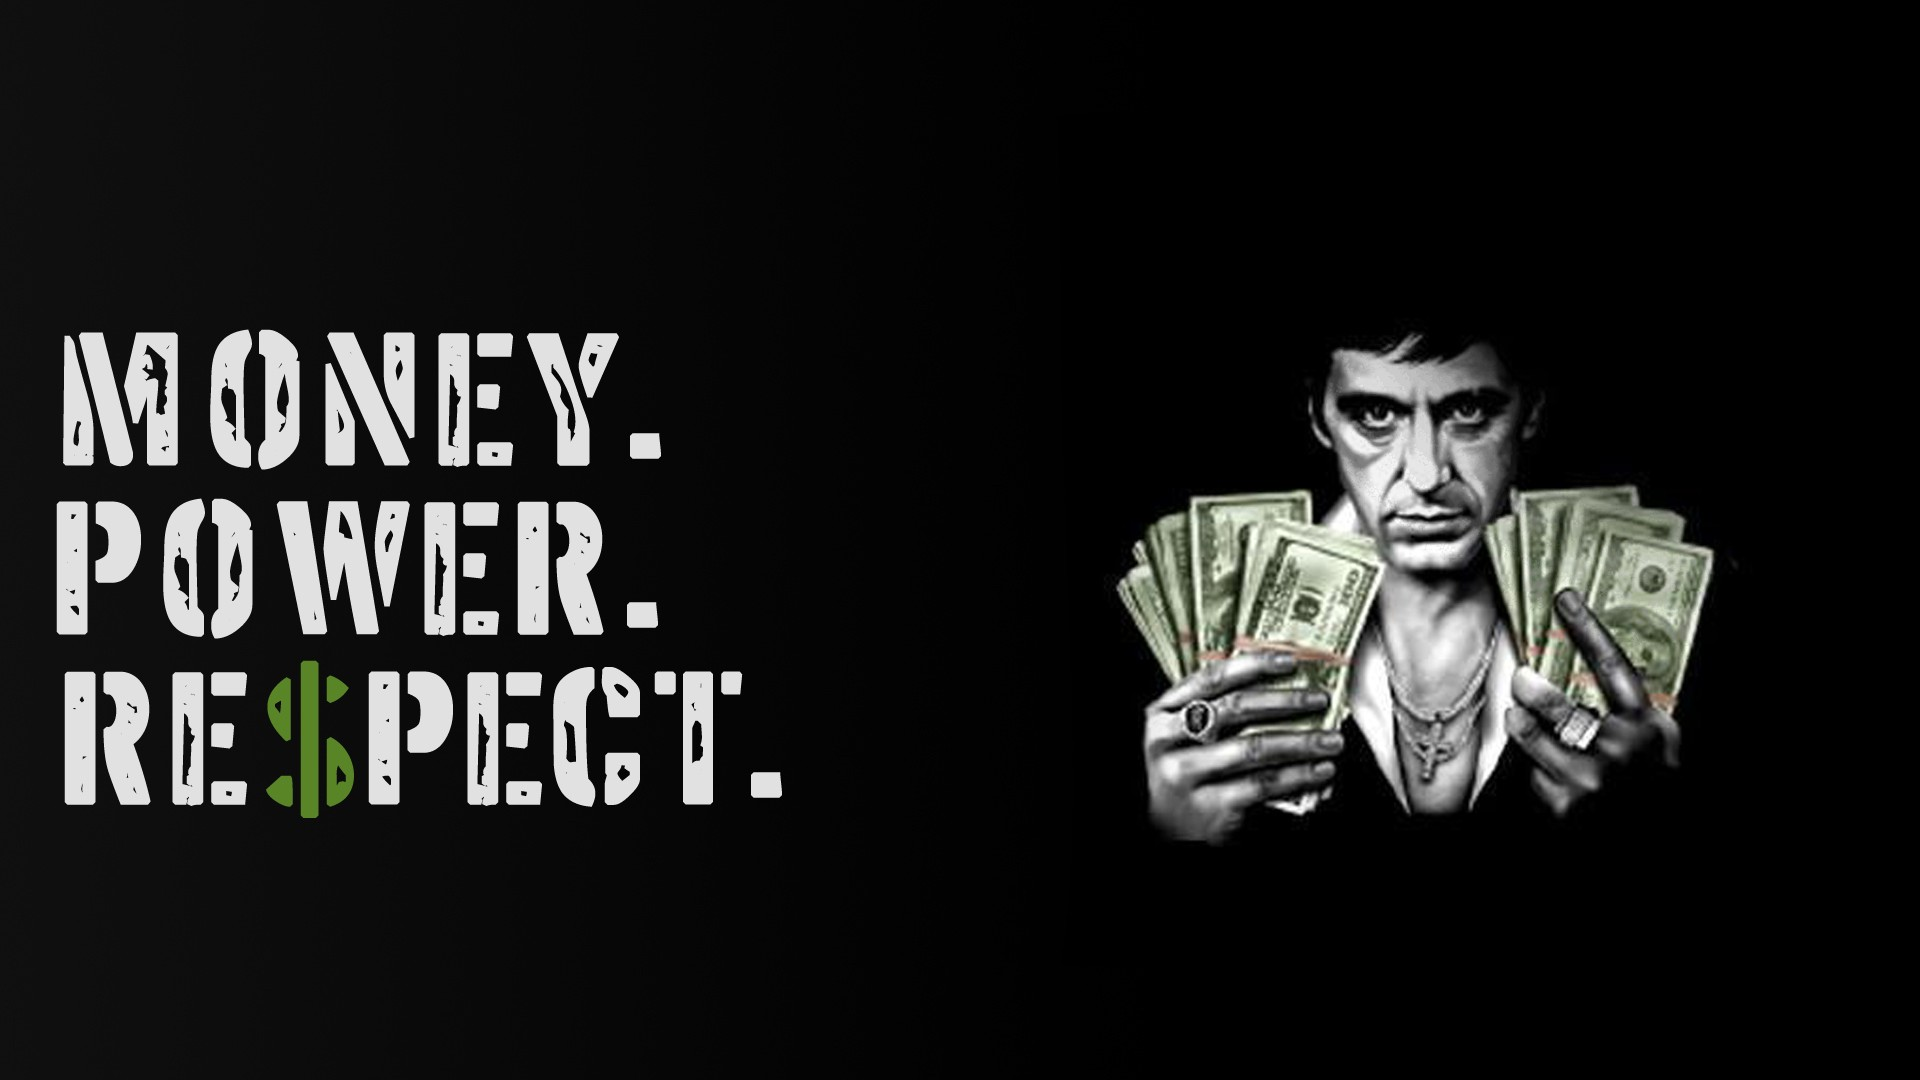 Mafia Gangster Wallpaper 1080p Is Cool Wallpapers